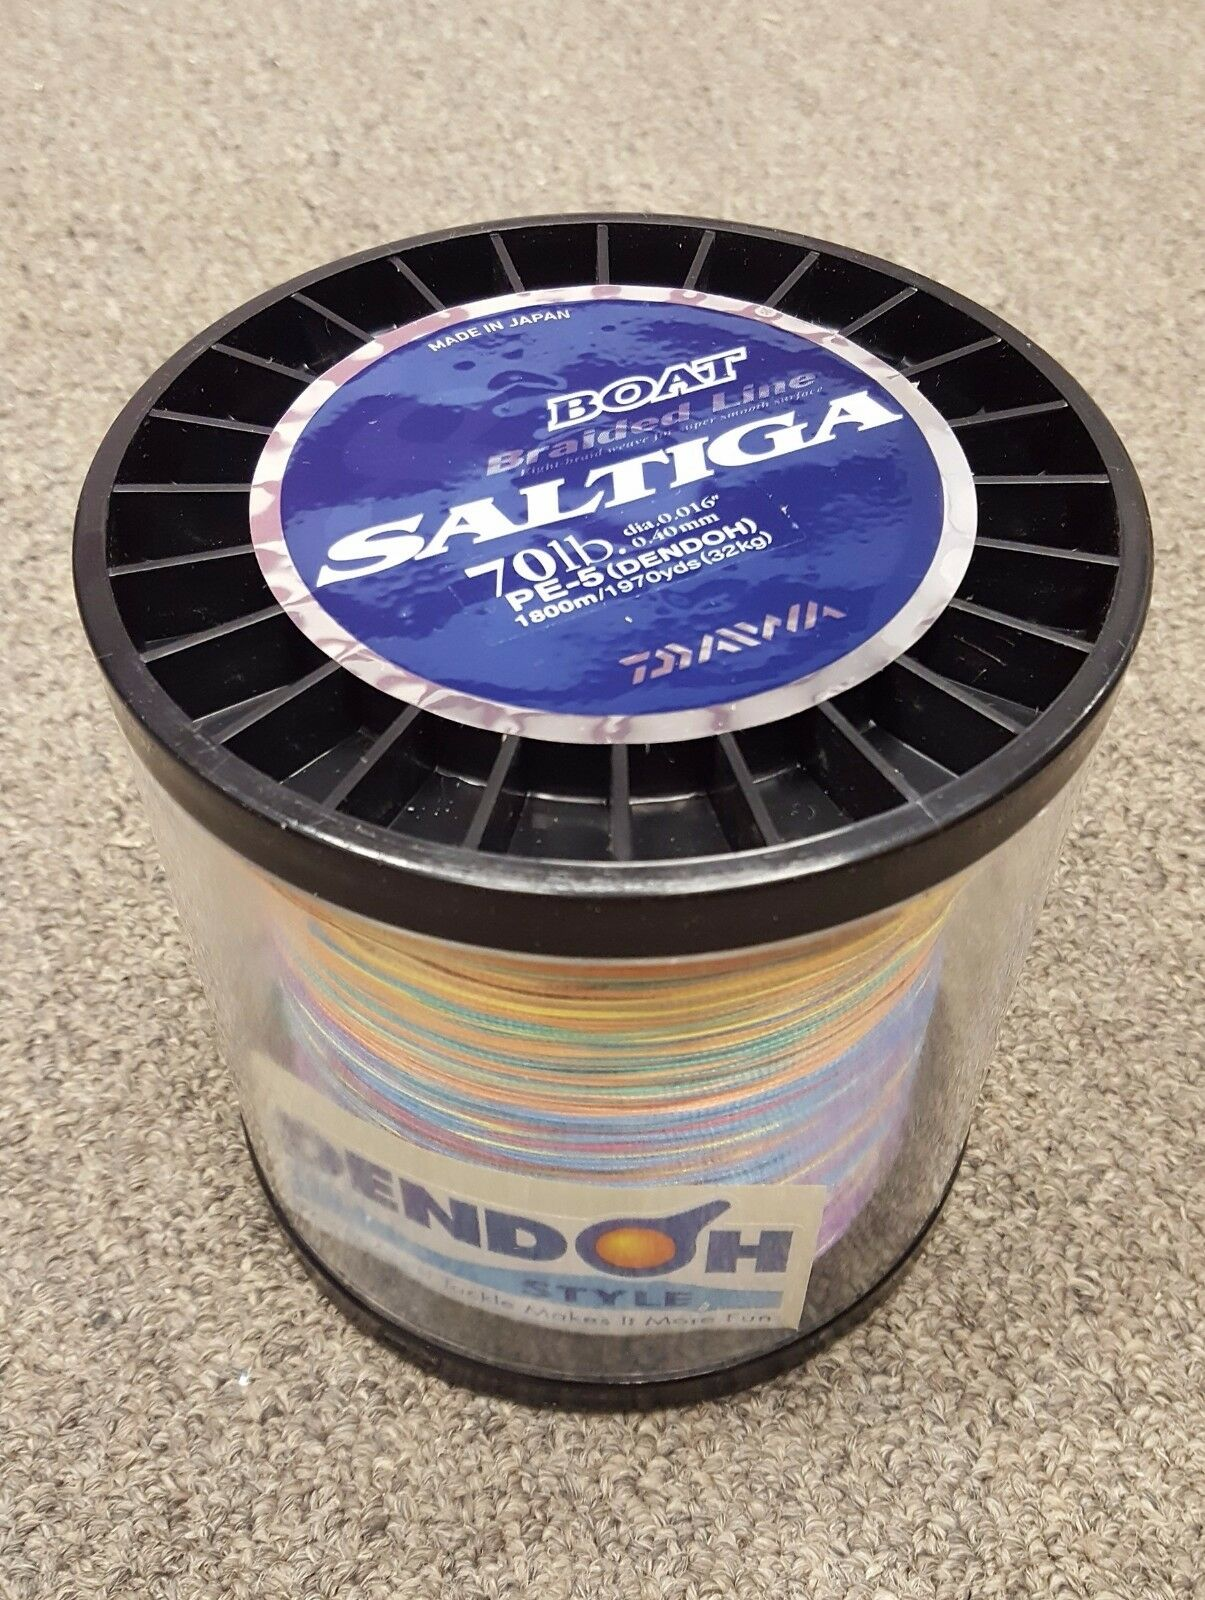 Daiwa Saltiga Boat Braided Line Multi-color 70lb 1800m 1970 yards - SAB-B70LB